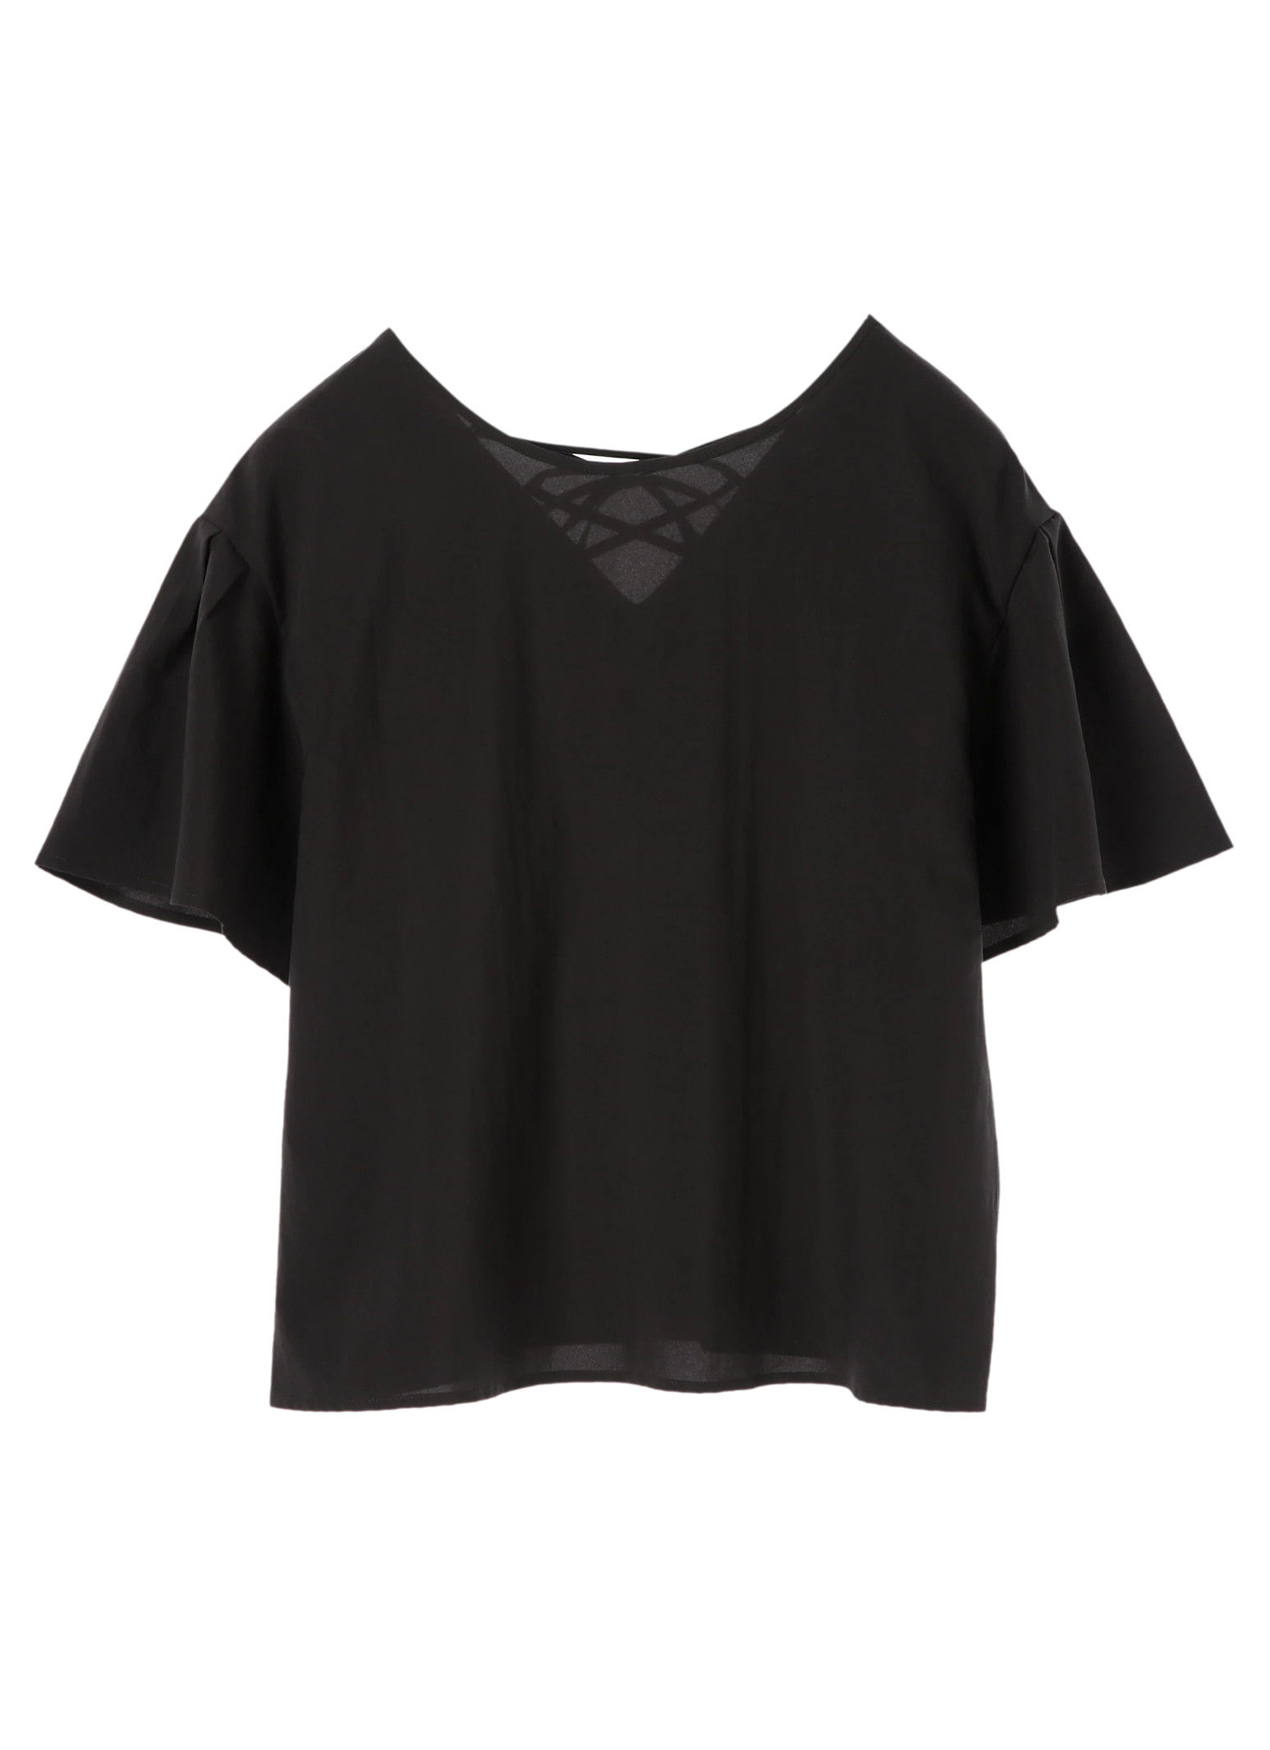 E-hyphen World Gallery Strom Top  - Black